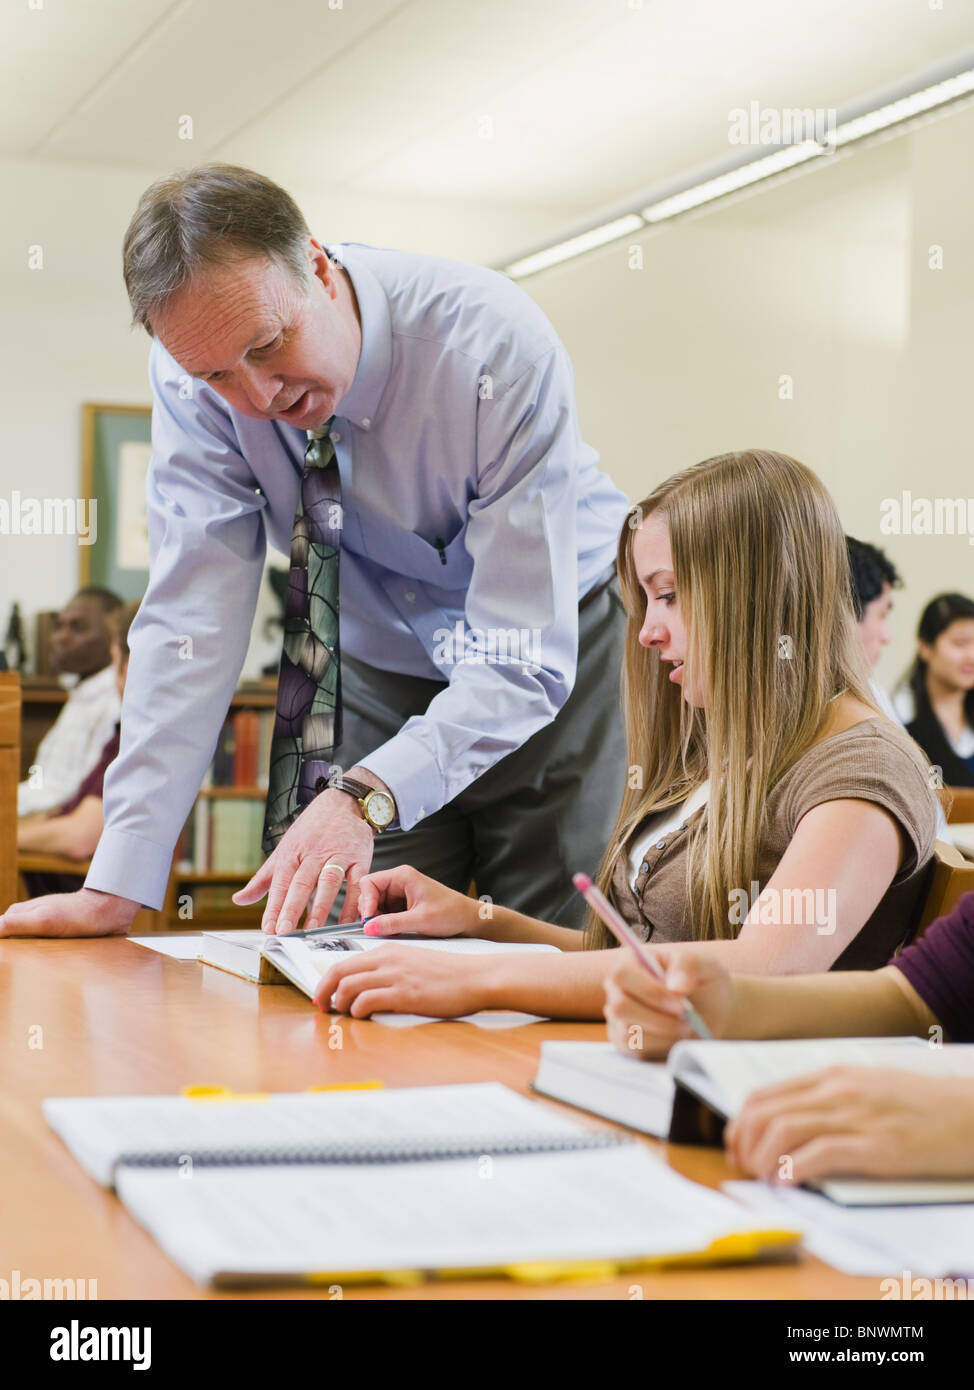 Professor giving instruction to college student - Stock Image